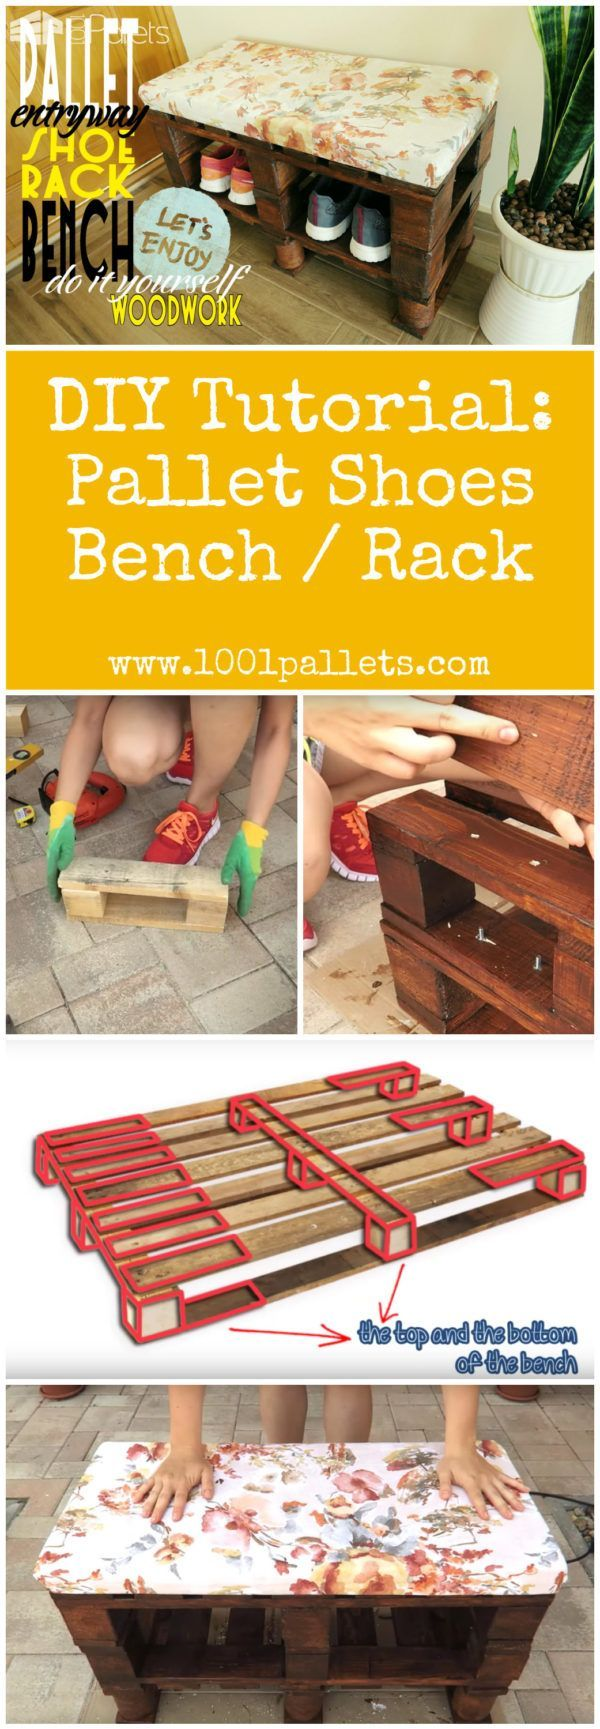 Diy comfortable pallet adirondack chair 101 pallets - Diy Tutorial Pallet Shoes Bench Rack This Tutorial By Bettina From Paintycloud